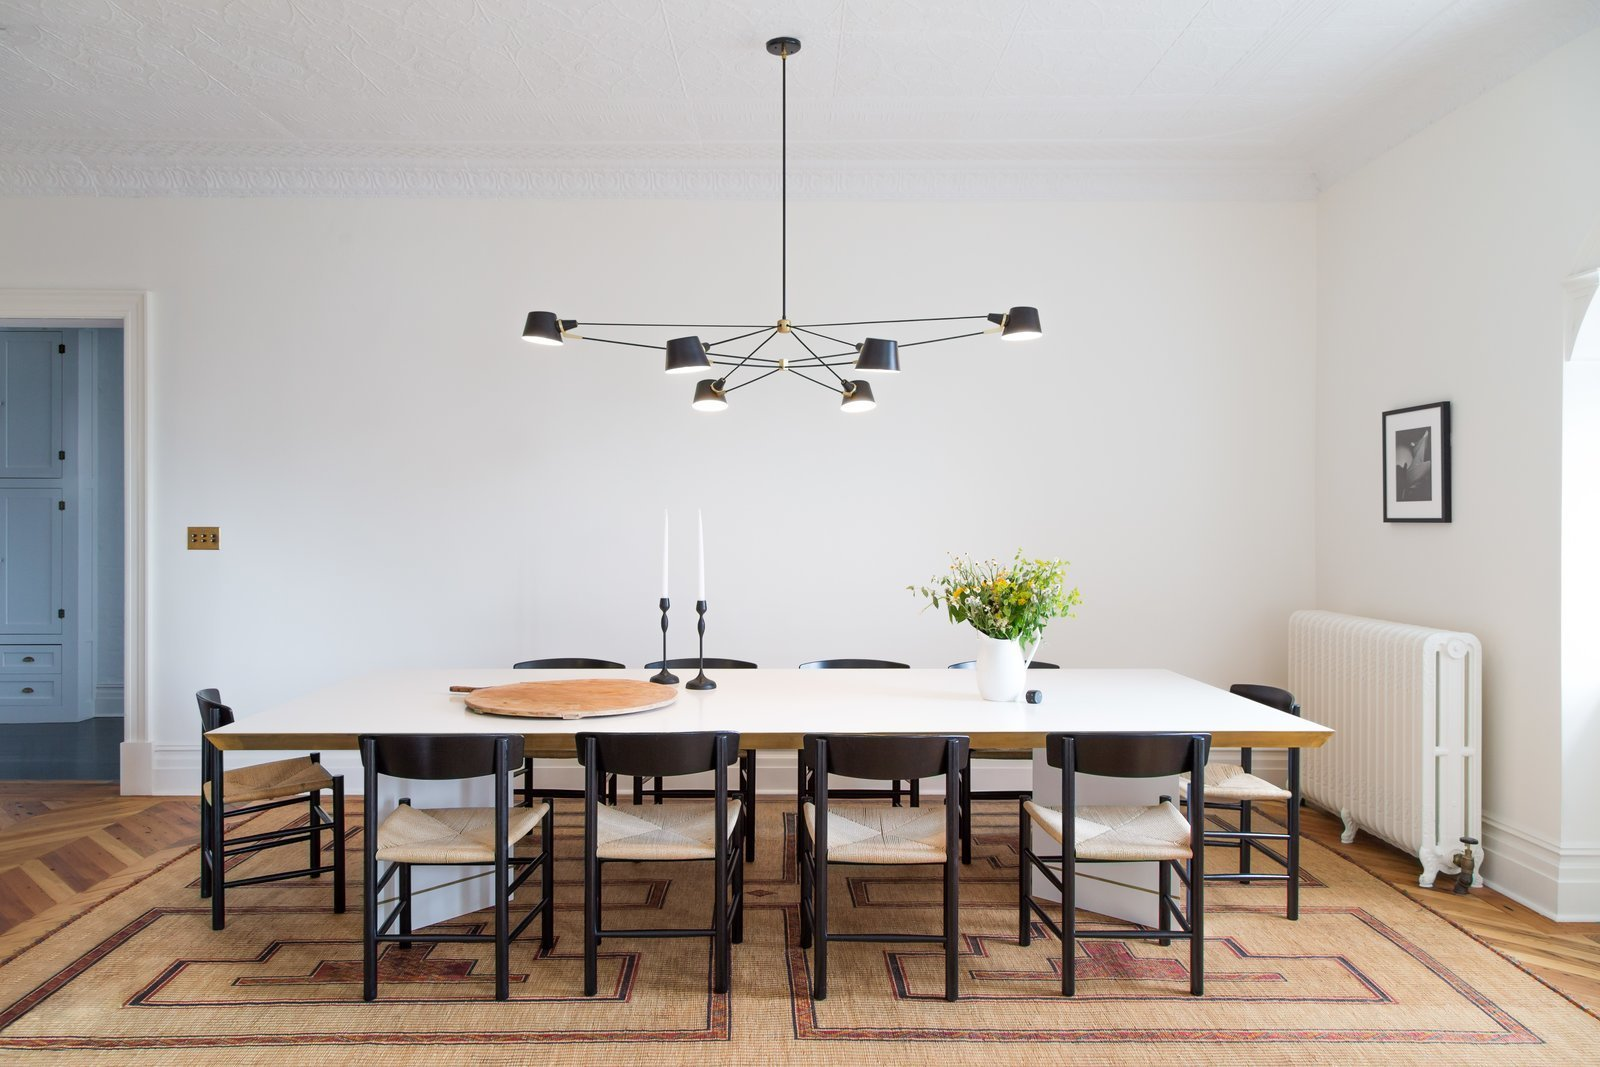 Dining Room, Table, Chair, Rug Floor, and Pendant Lighting  Photo 8 of 22 in A 19th-Century Schoolhouse in Brooklyn Becomes a Classy Apartment